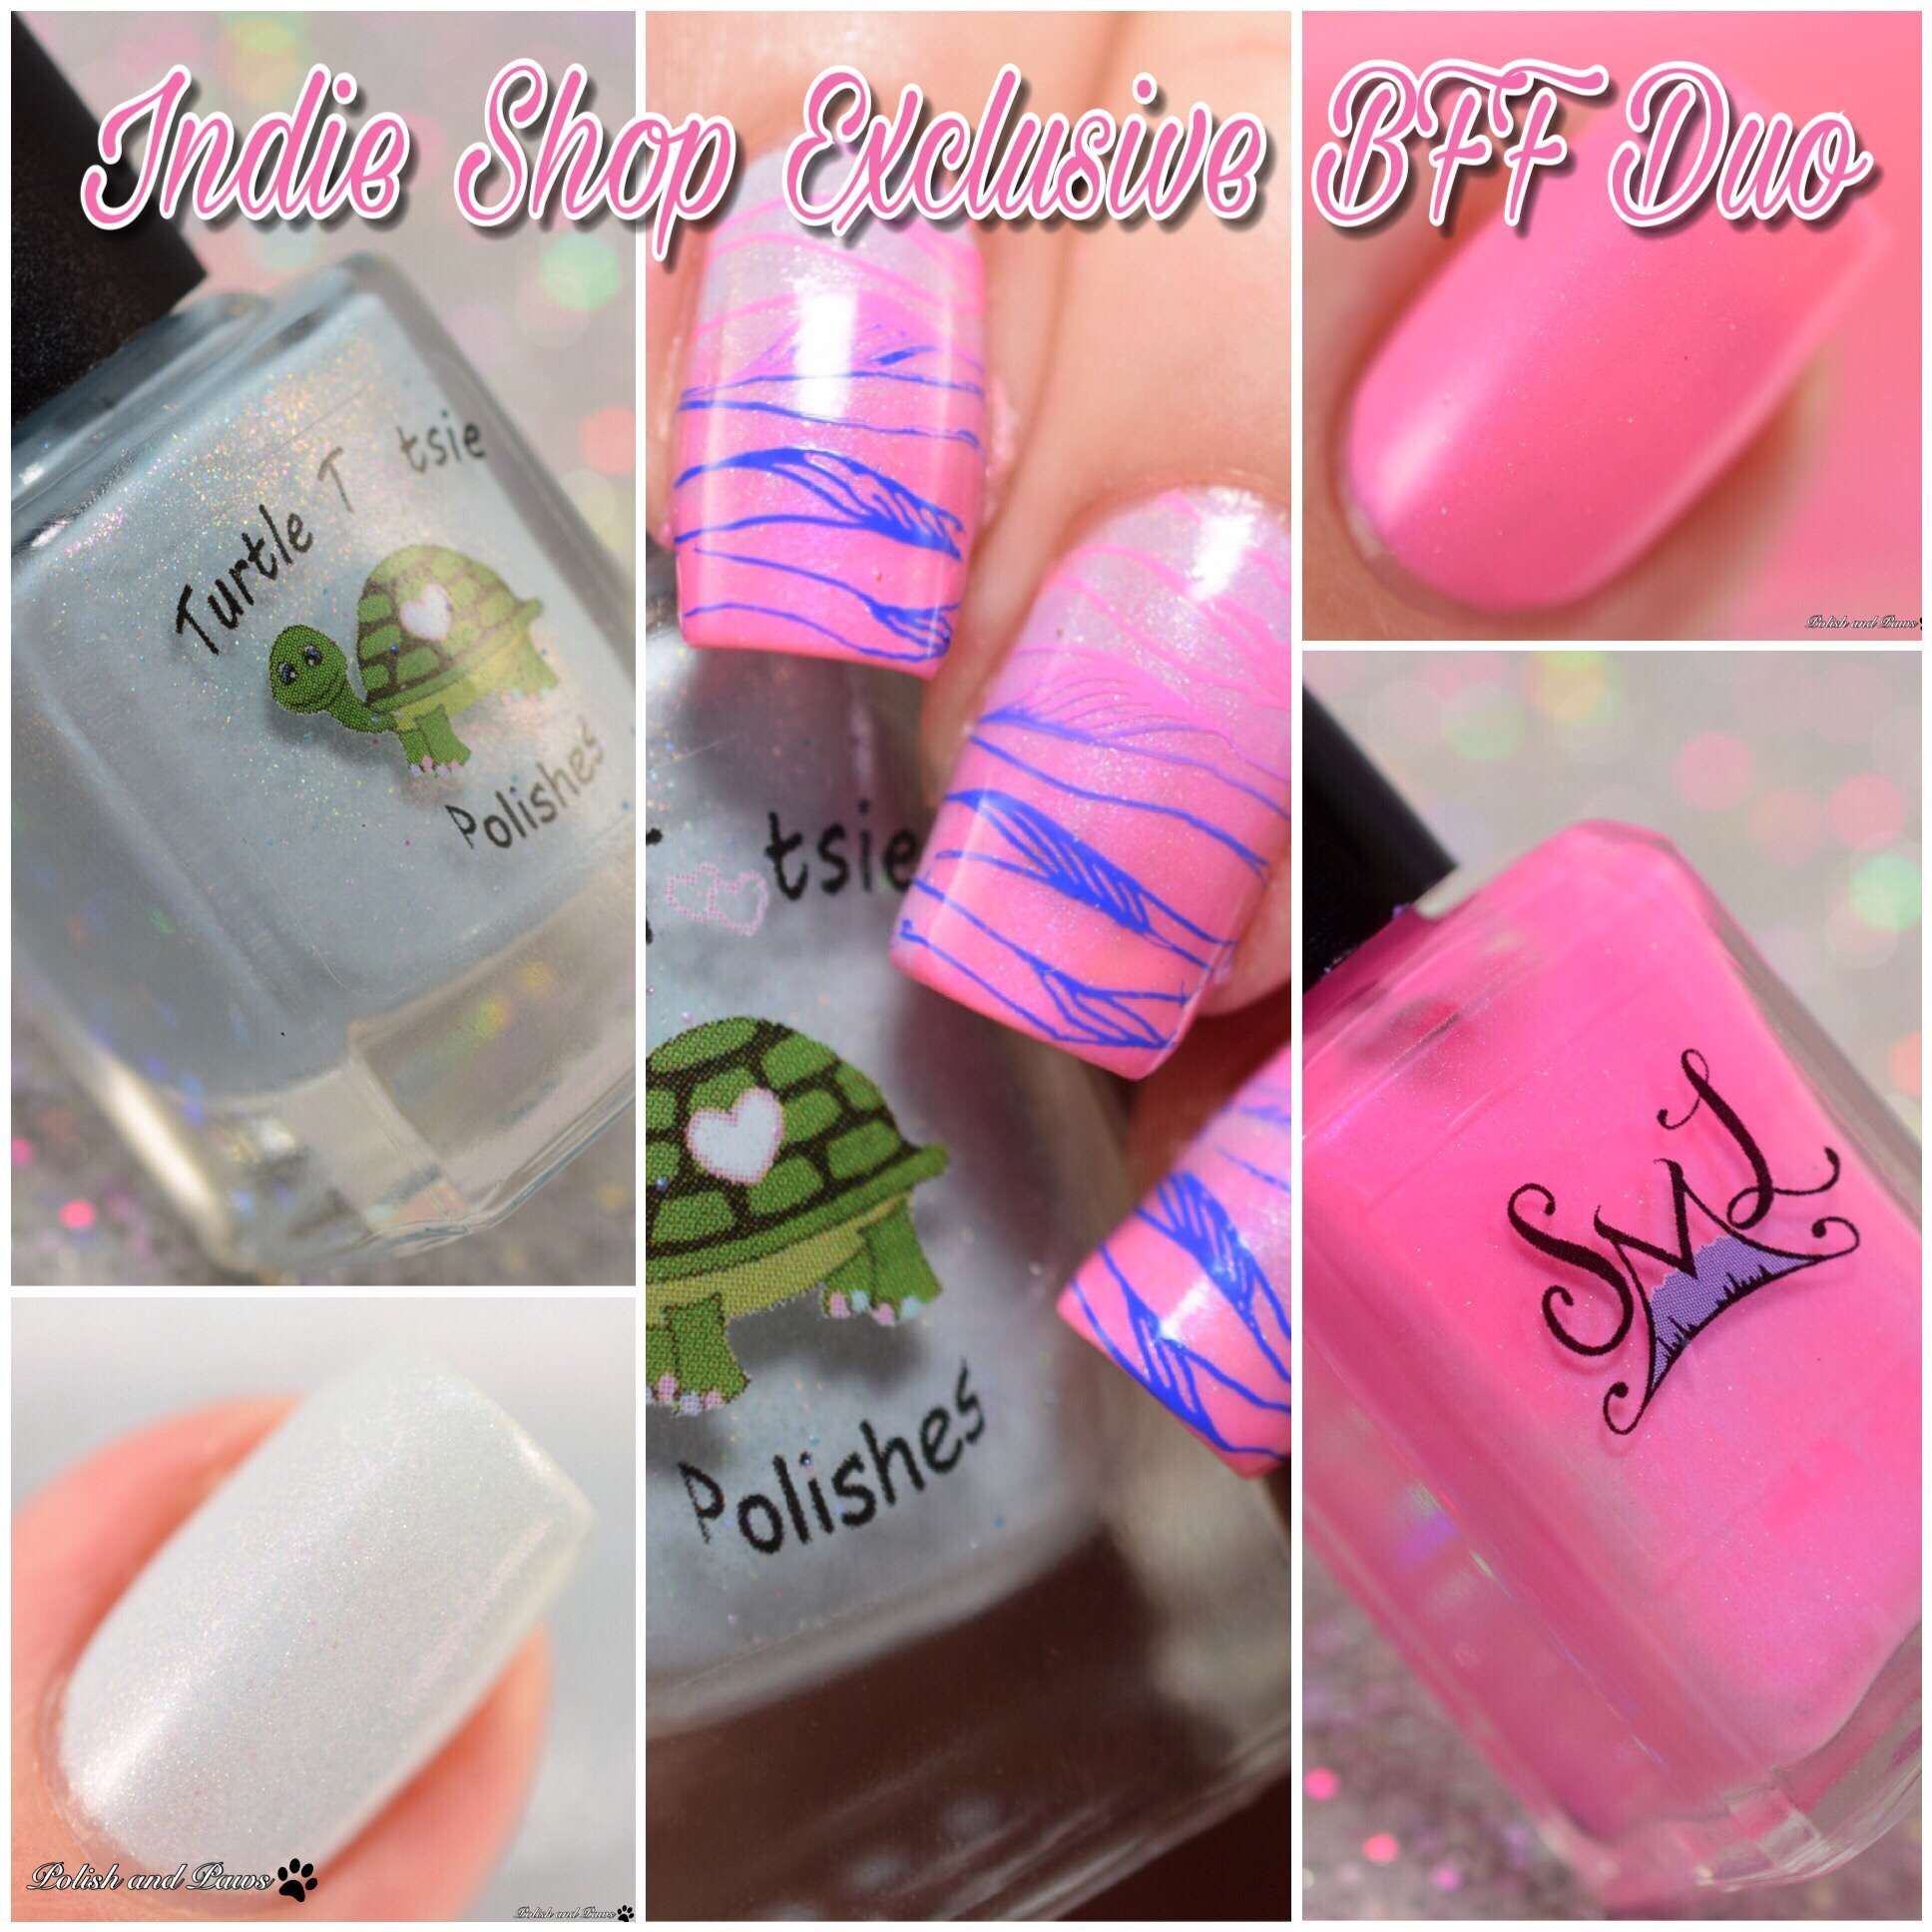 Turtle Tootsie Polishes Smoky Mountain Lacquers Indie Shop Exclusive BFF Duo